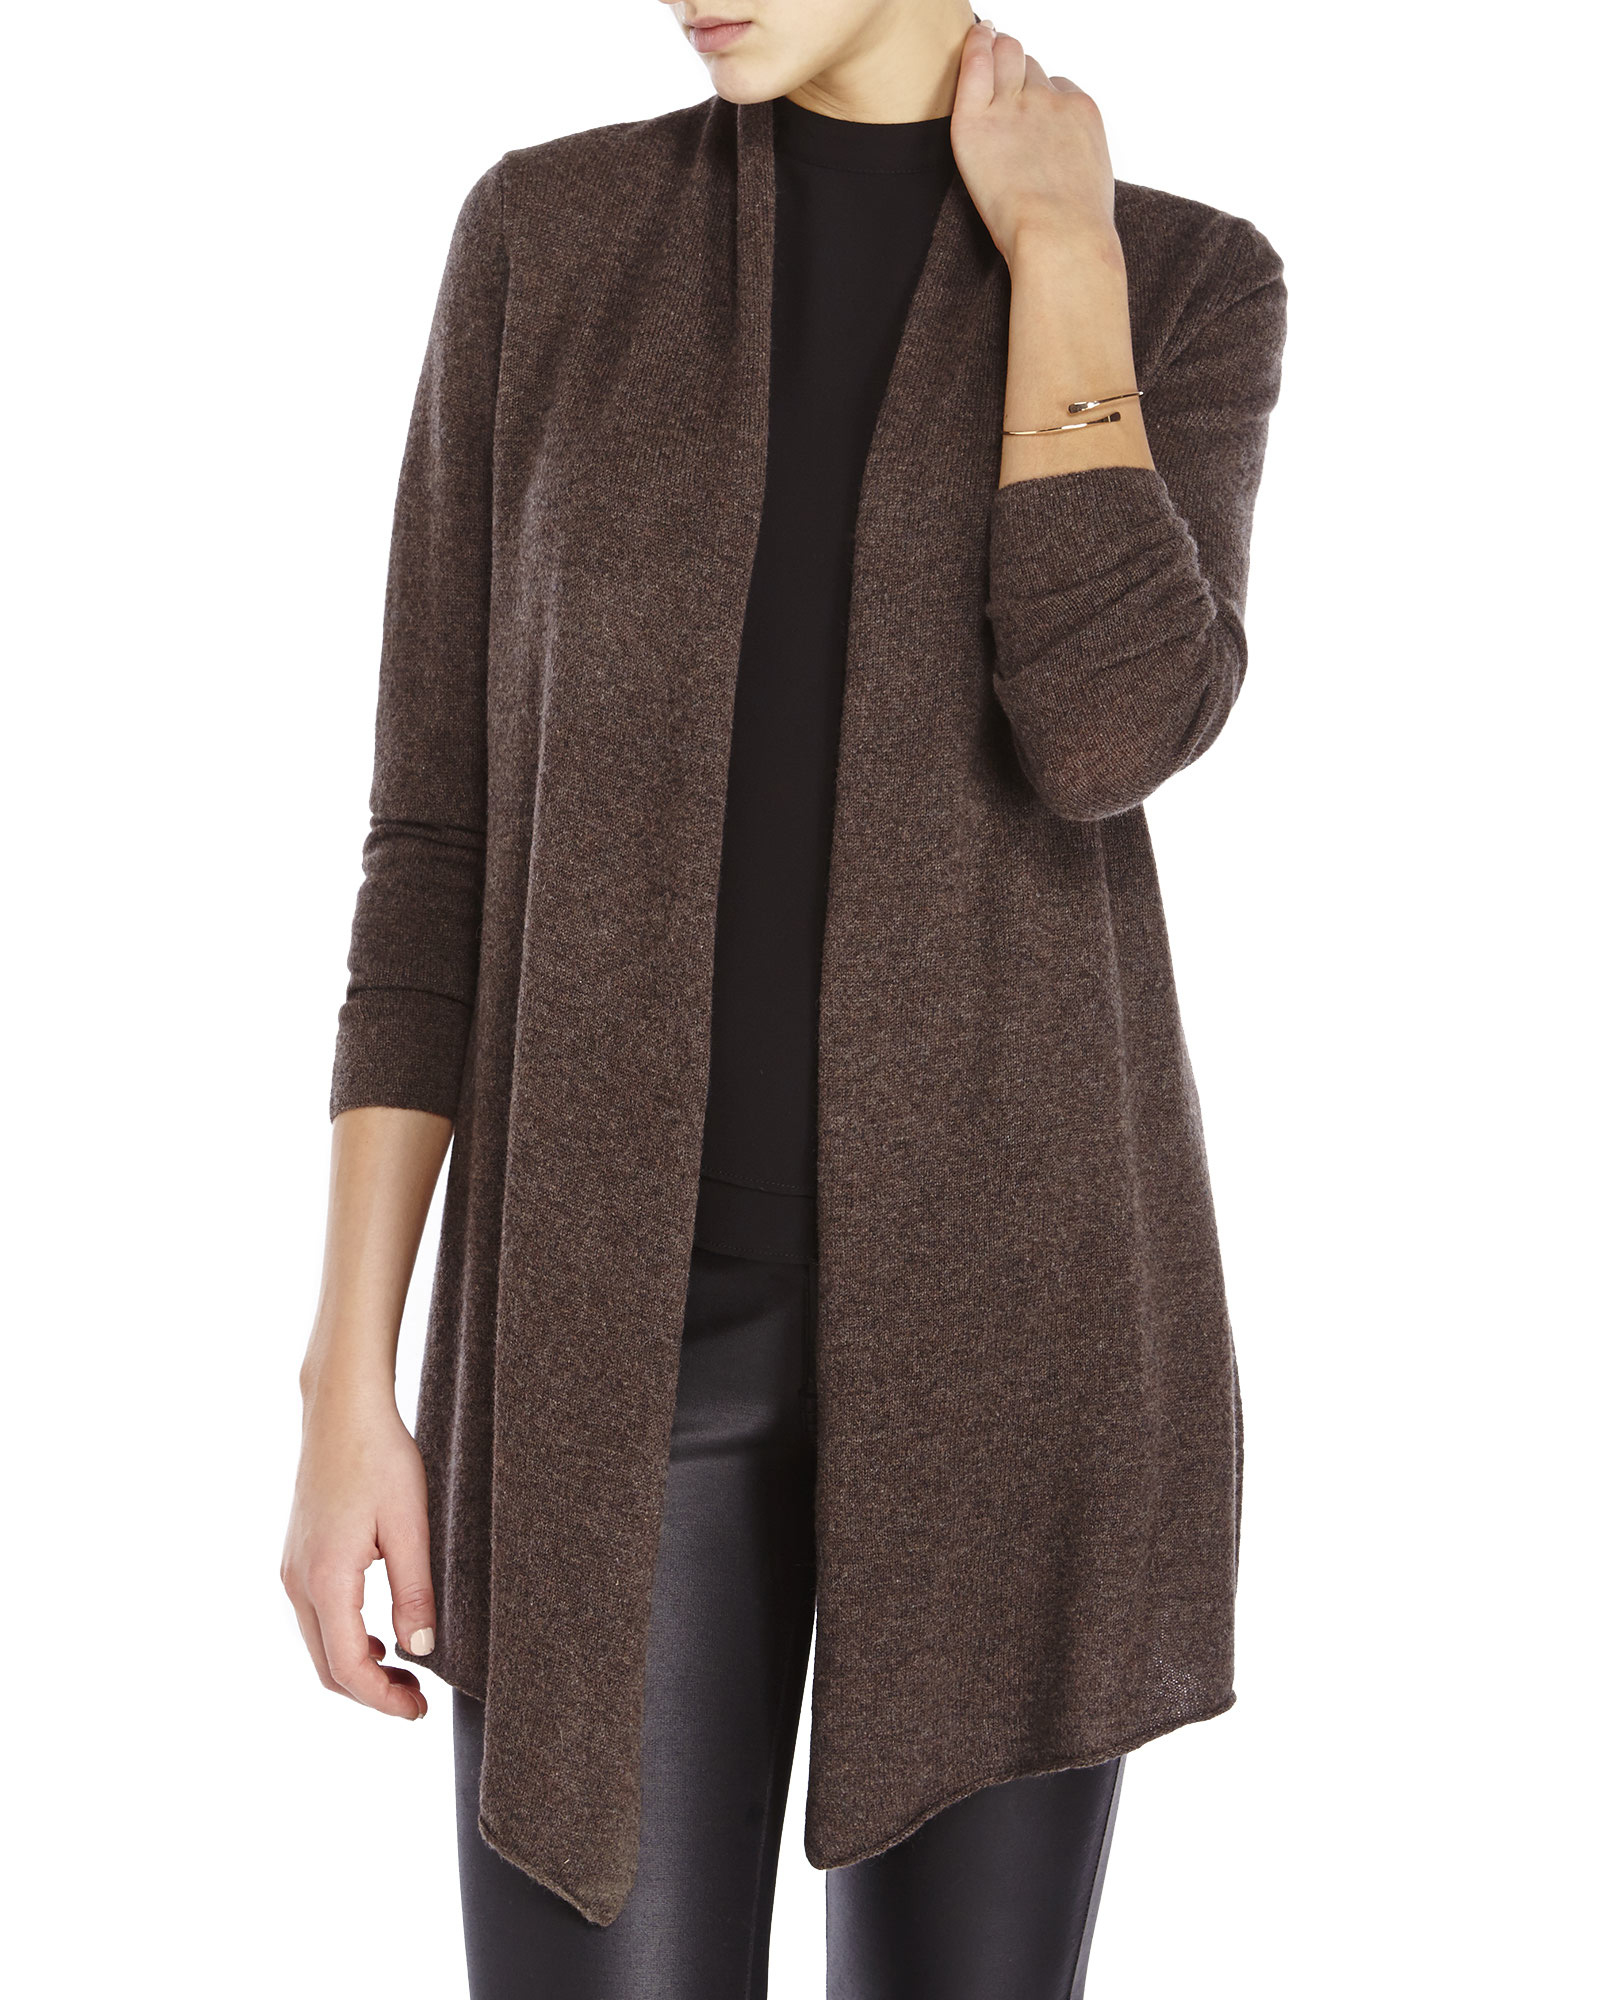 In cashmere Long Open Cardigan in Brown | Lyst